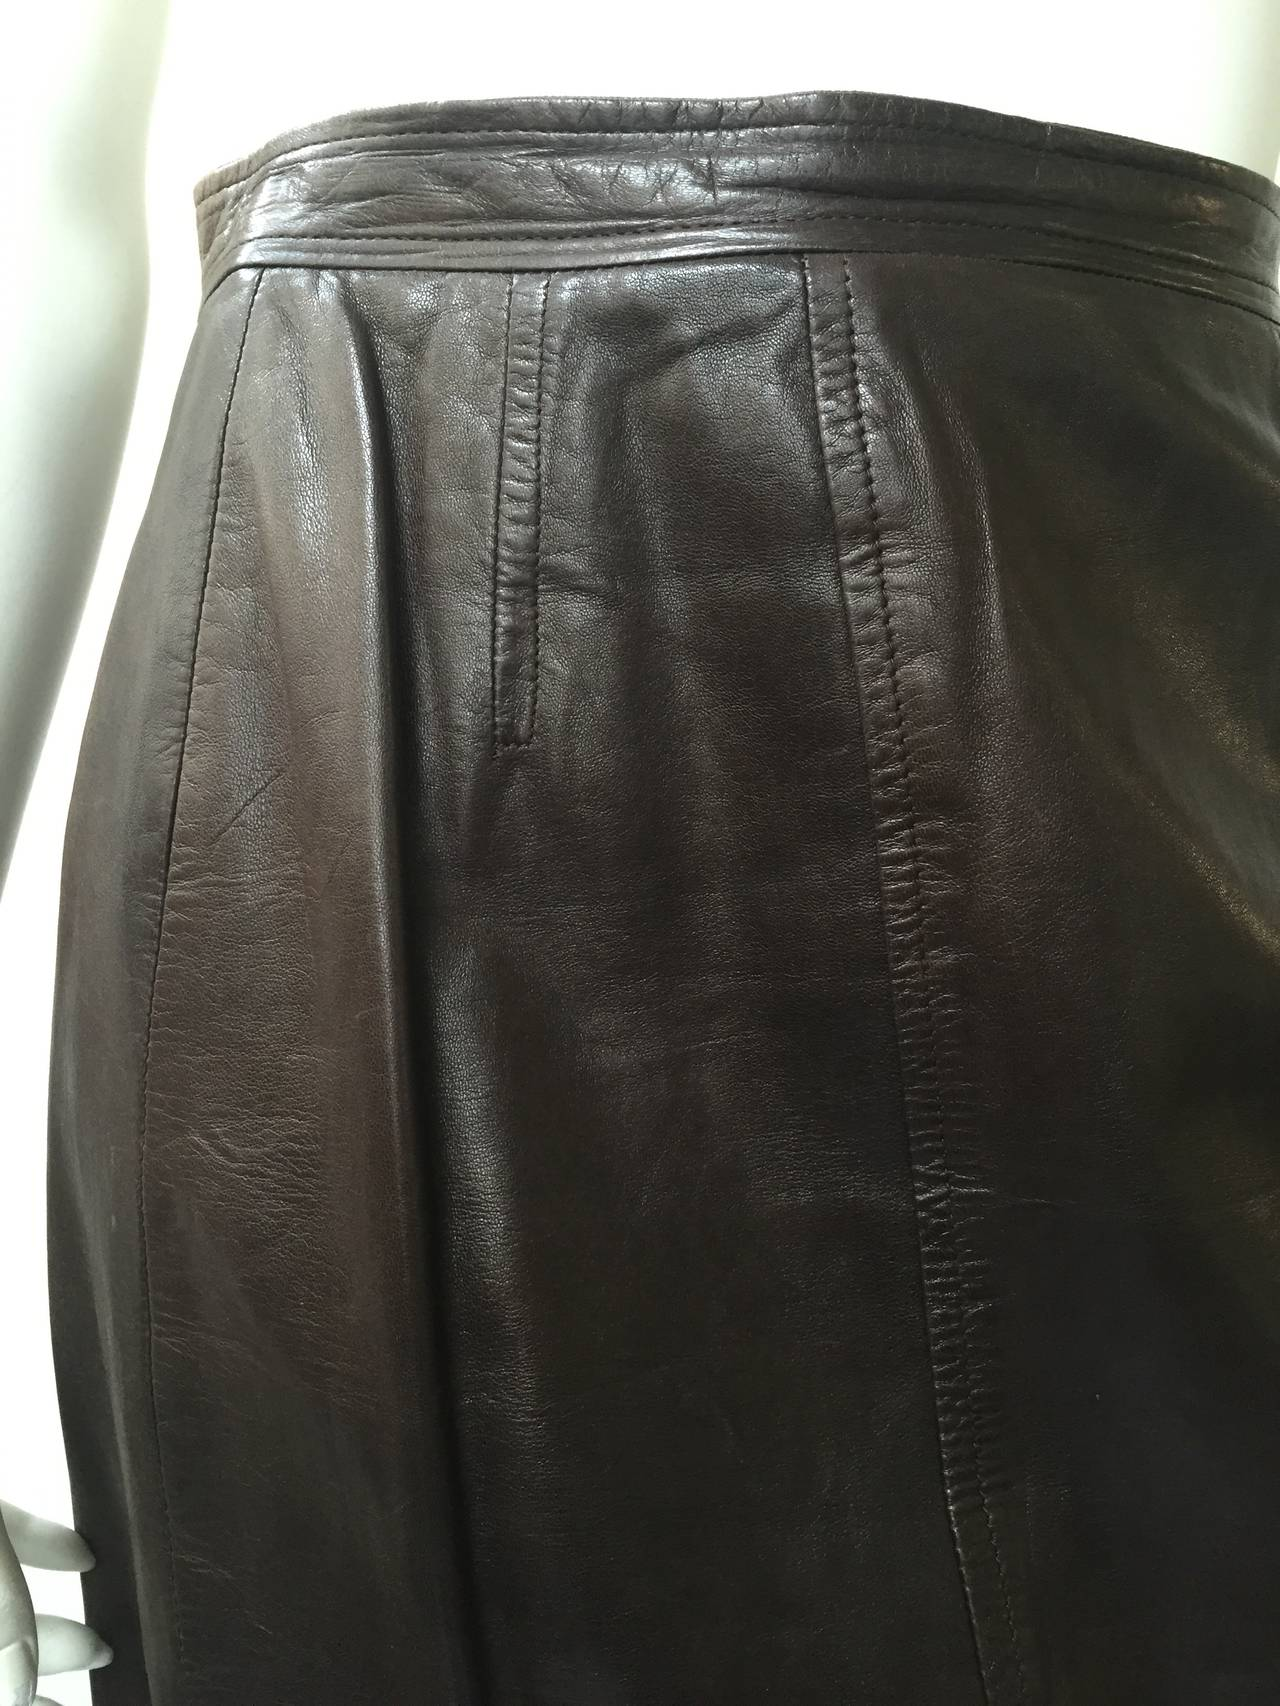 Chanel 80s brown leather skirt size 6. 3